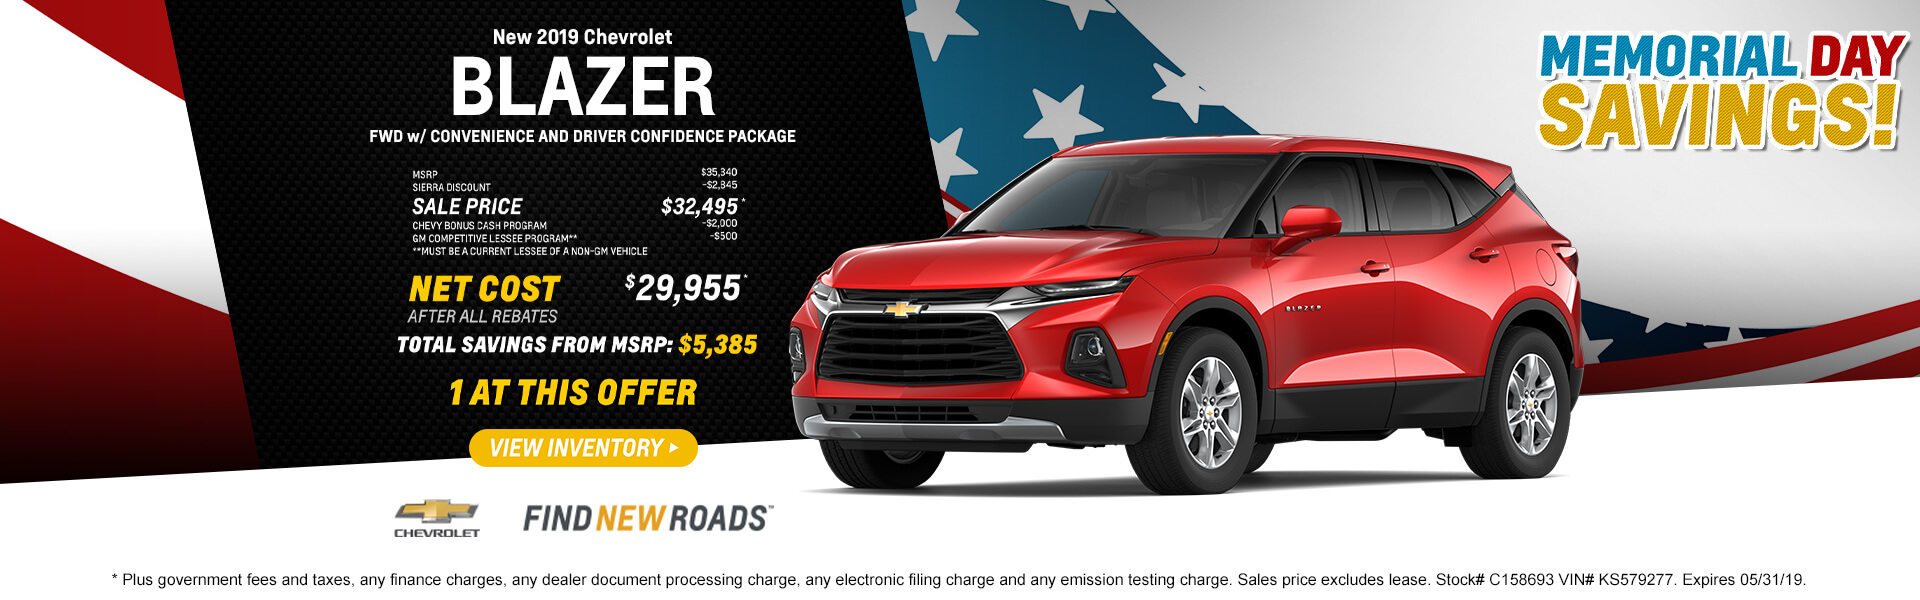 2019 CHEVROLET BLAZER FWD Purchase $35,340 Plus government fees and taxes, any finance charges, any dealer document processing charge, any electronic filing charge and any emission testing charge. Sales price excludes lease. Stock# C158693 VIN# KS579277. Expires 05/31/19.